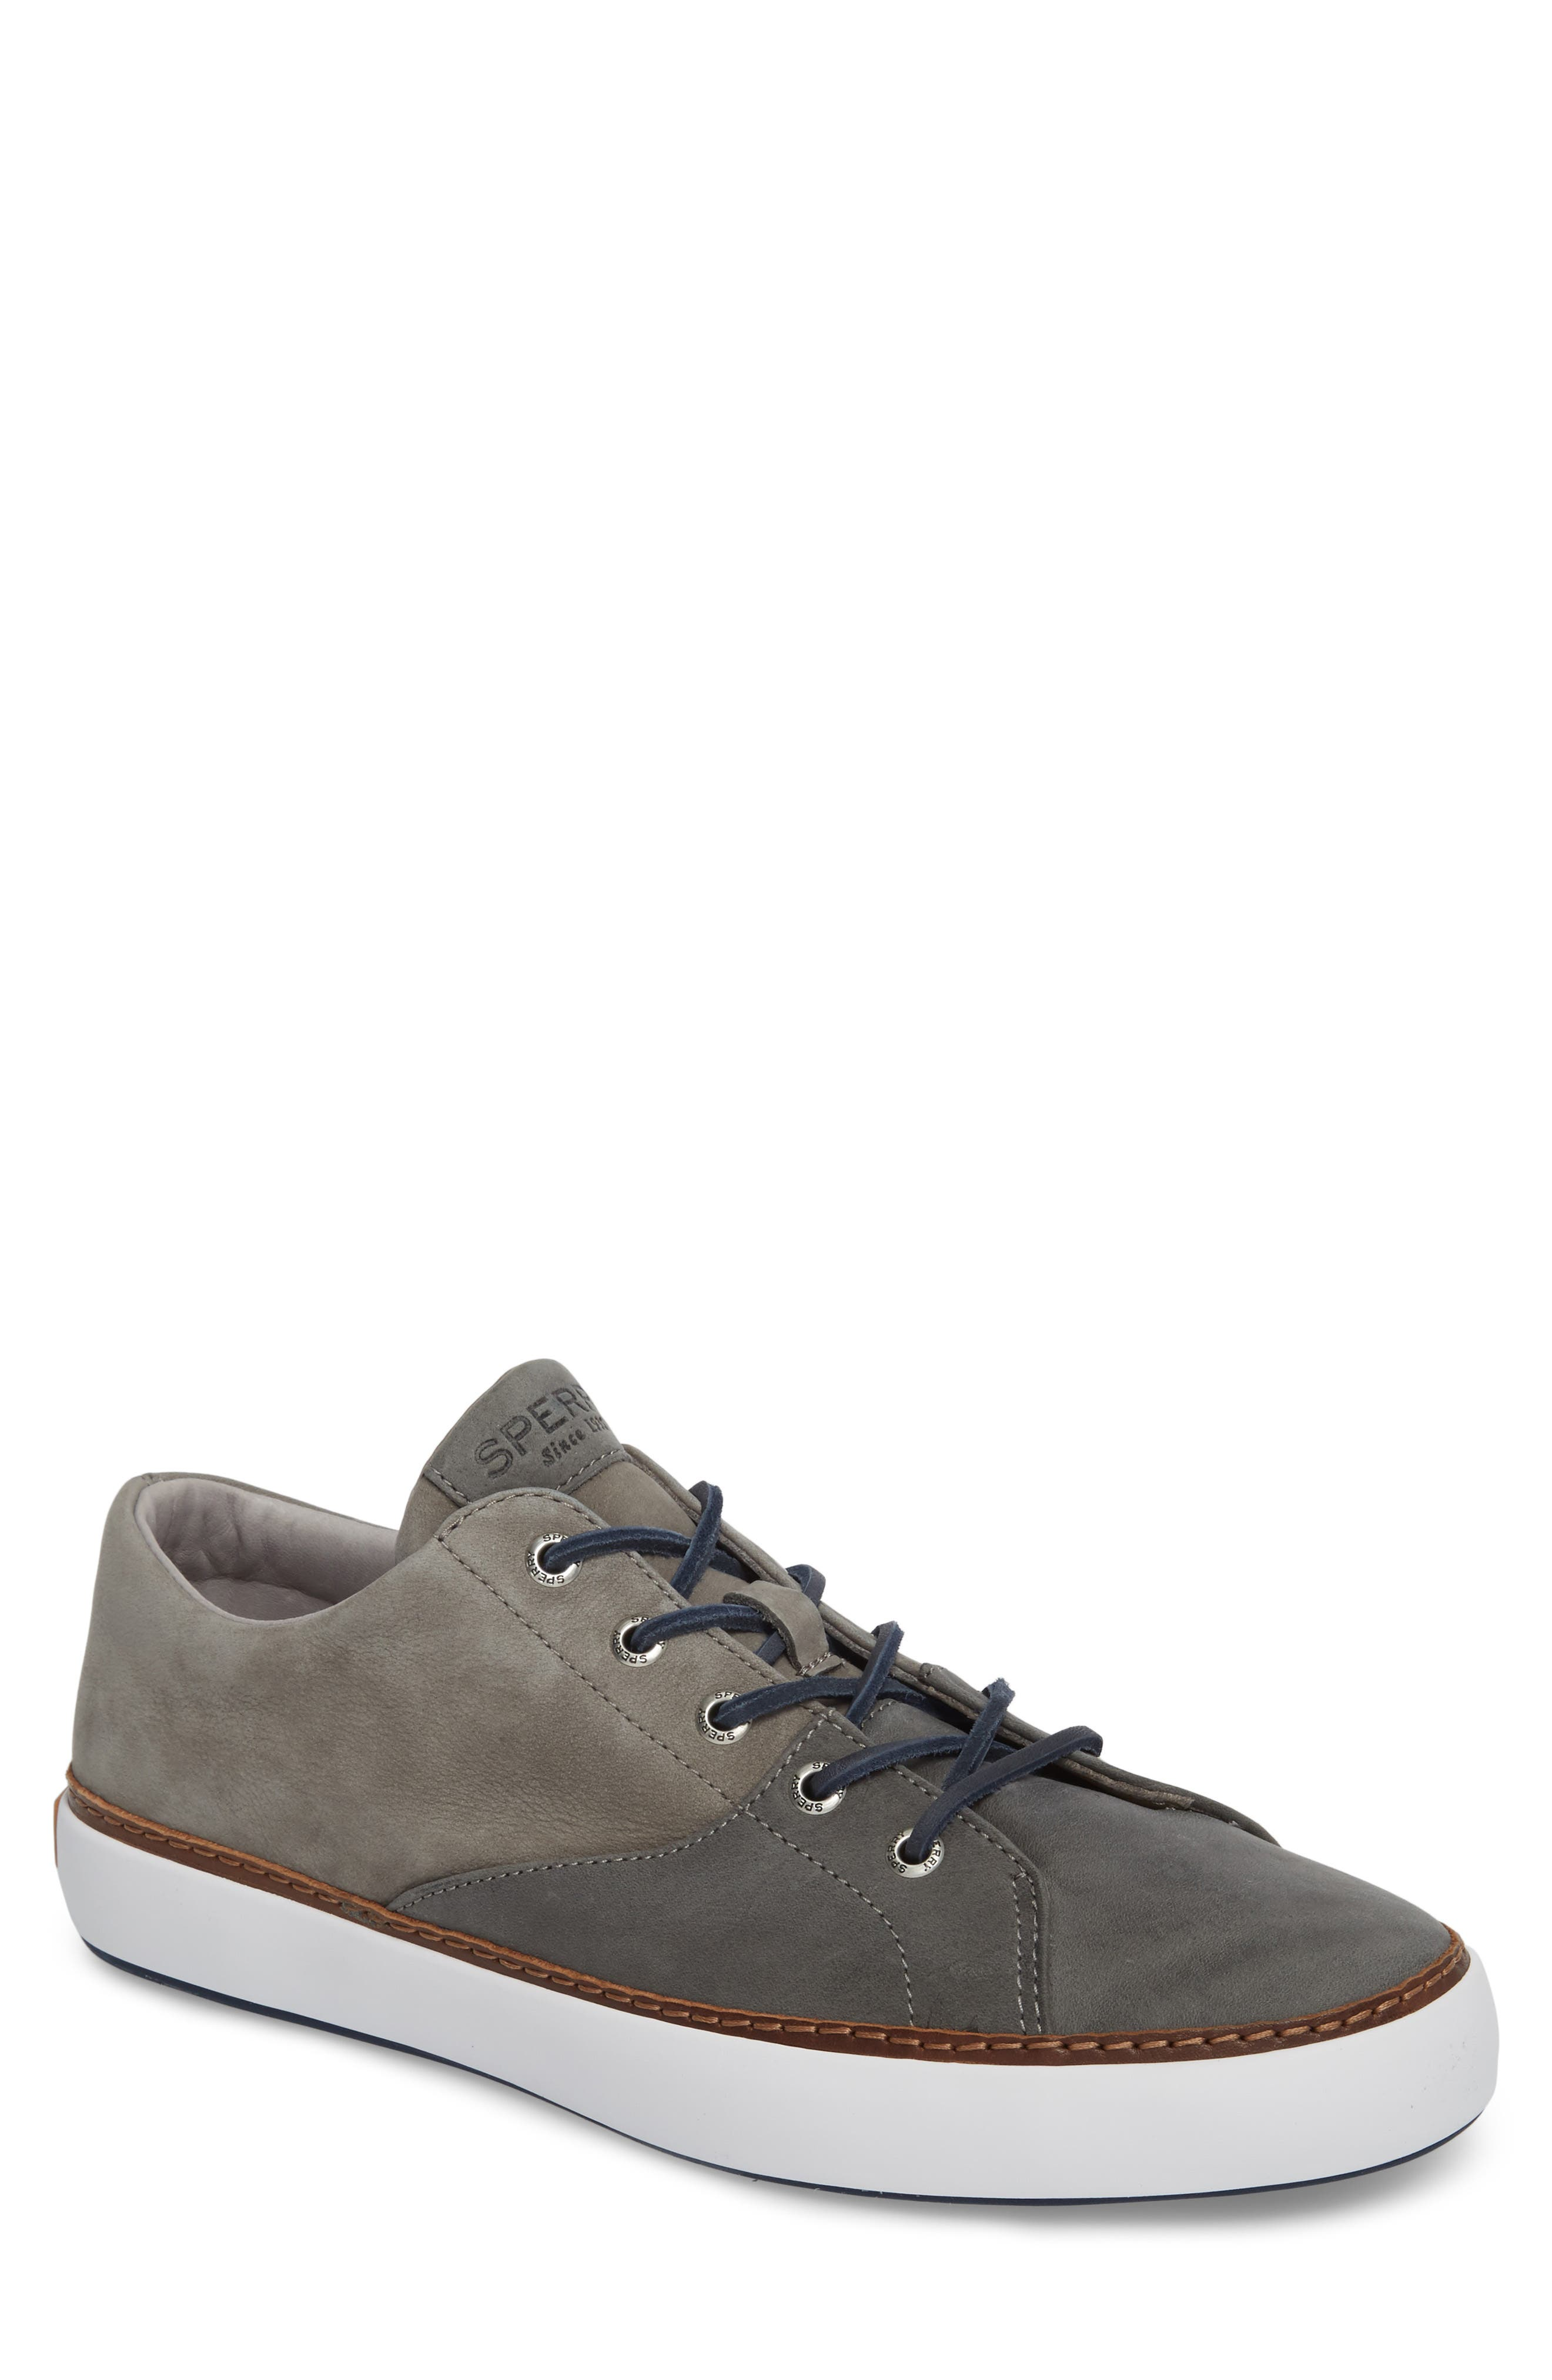 Gold Cup Haven Sneaker,                         Main,                         color, Grey Leather